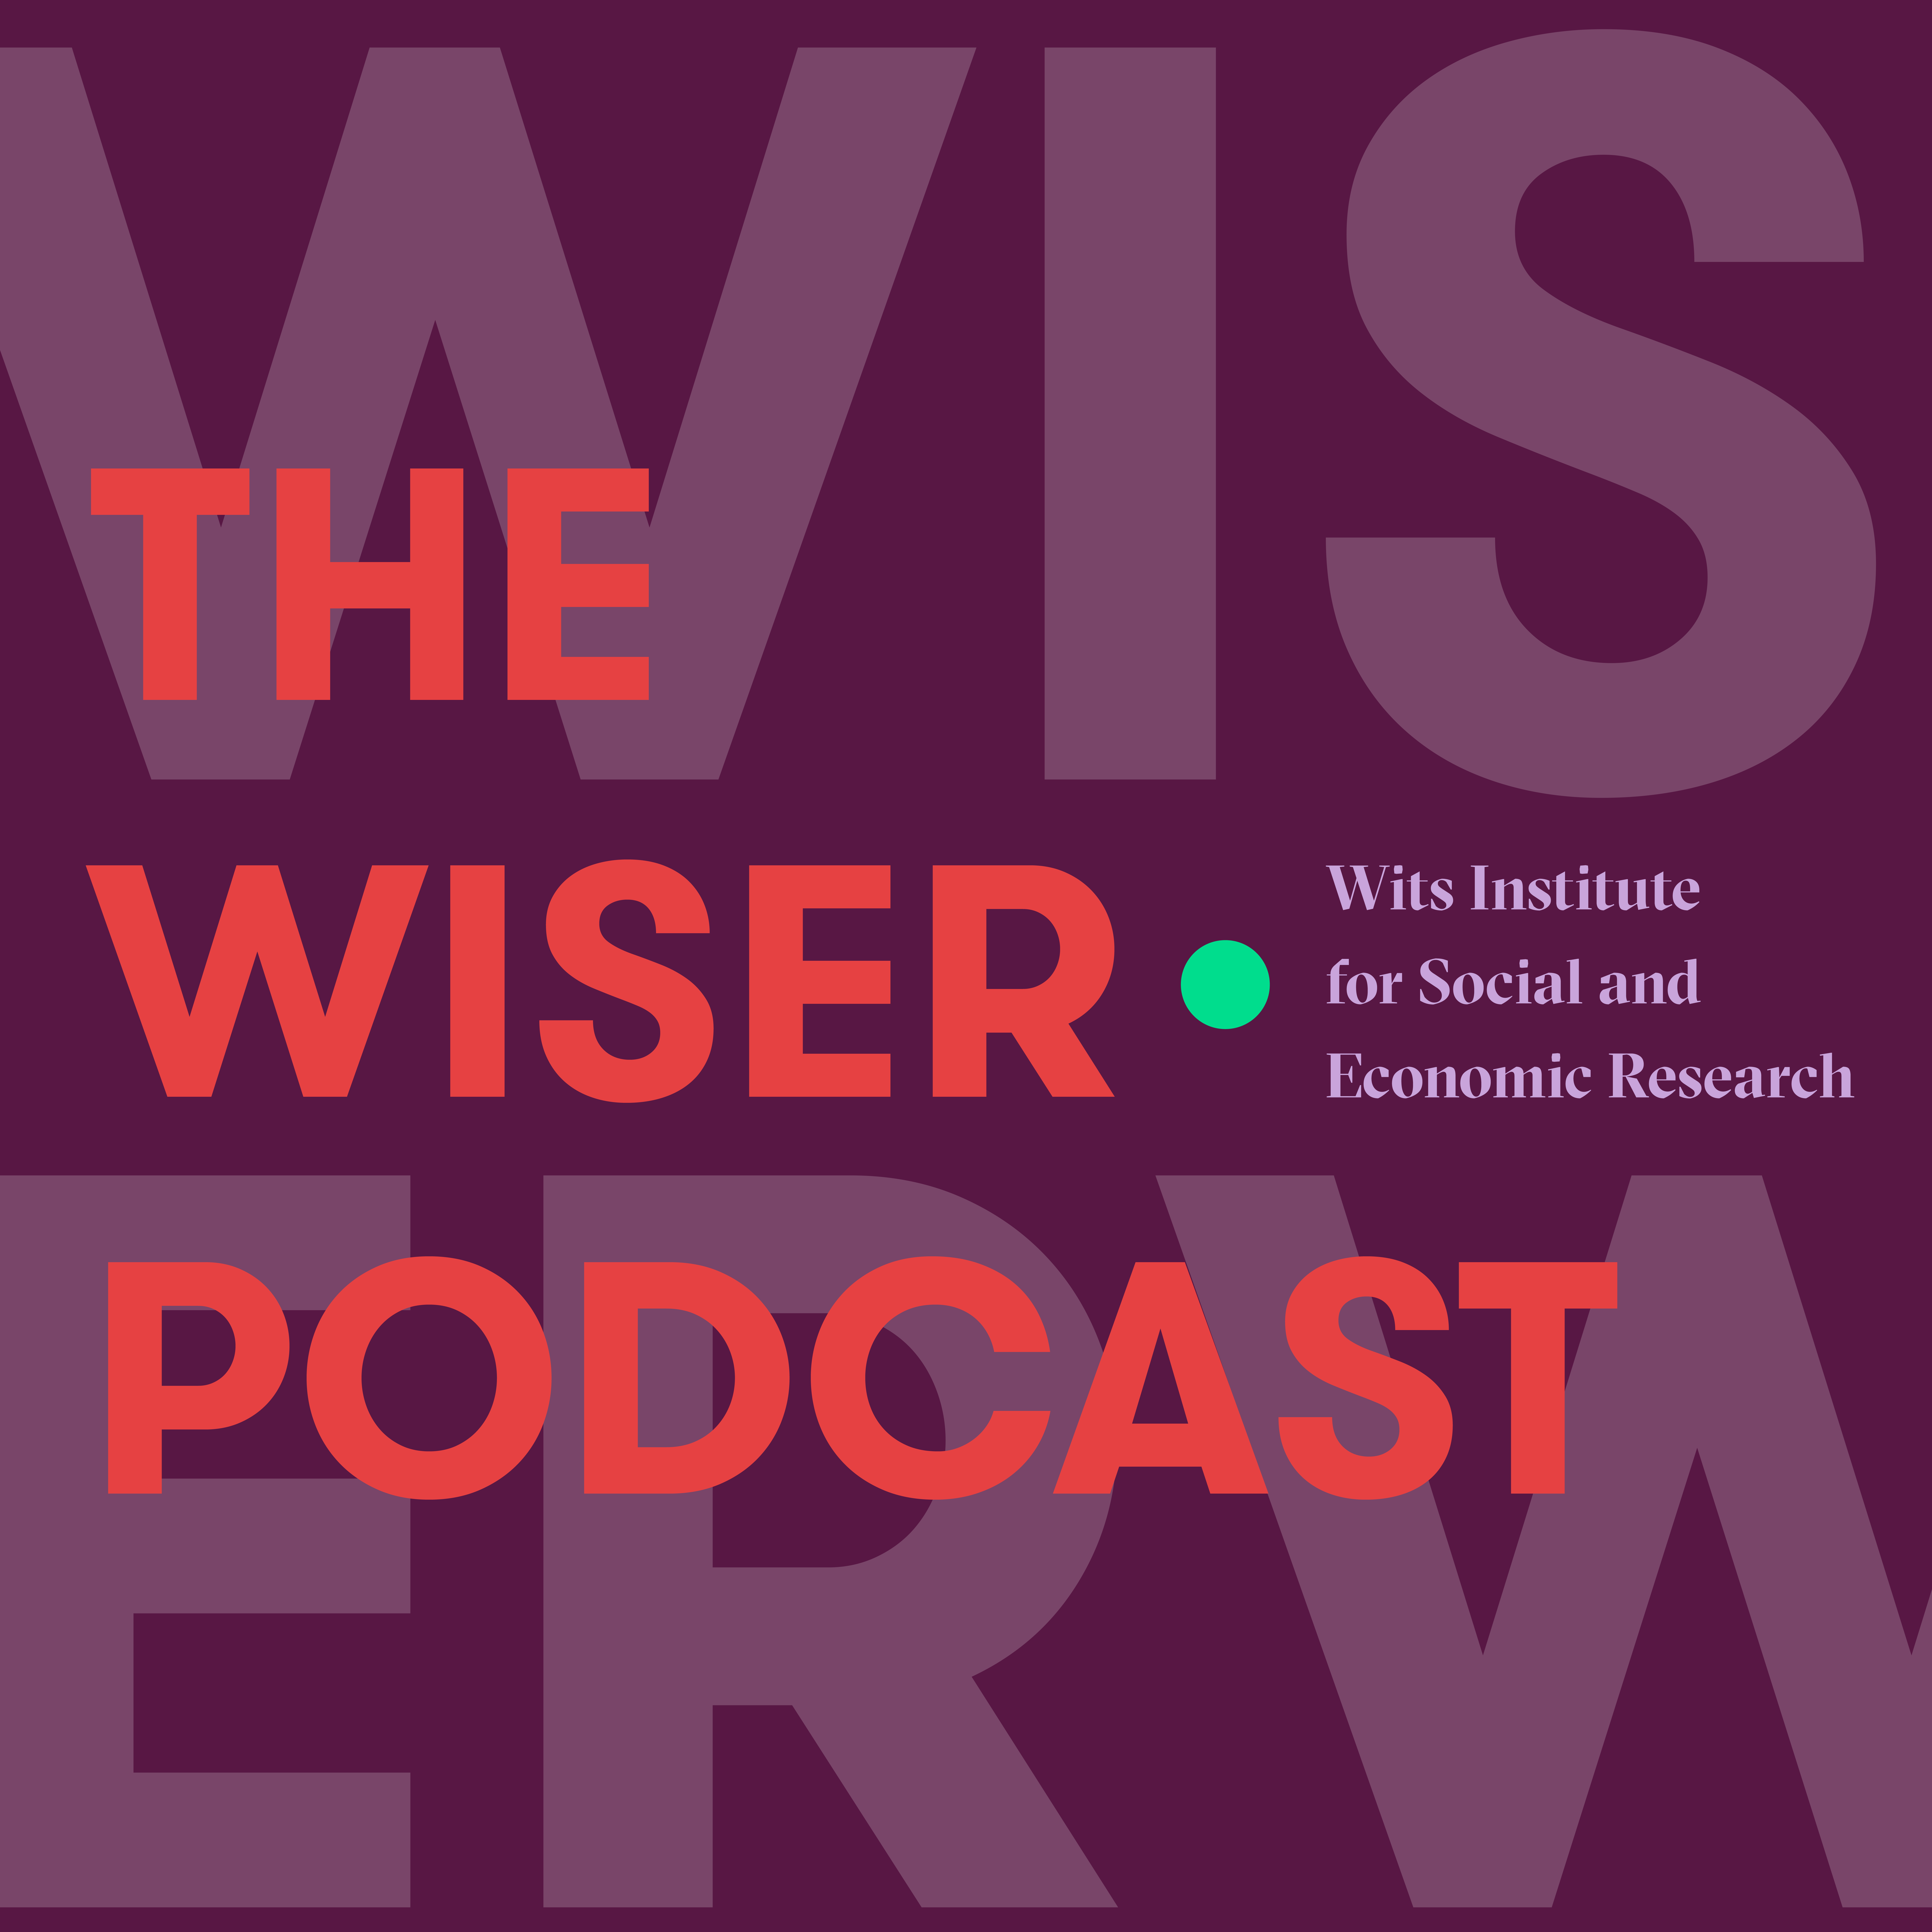 The WISER Podcast podcast show image